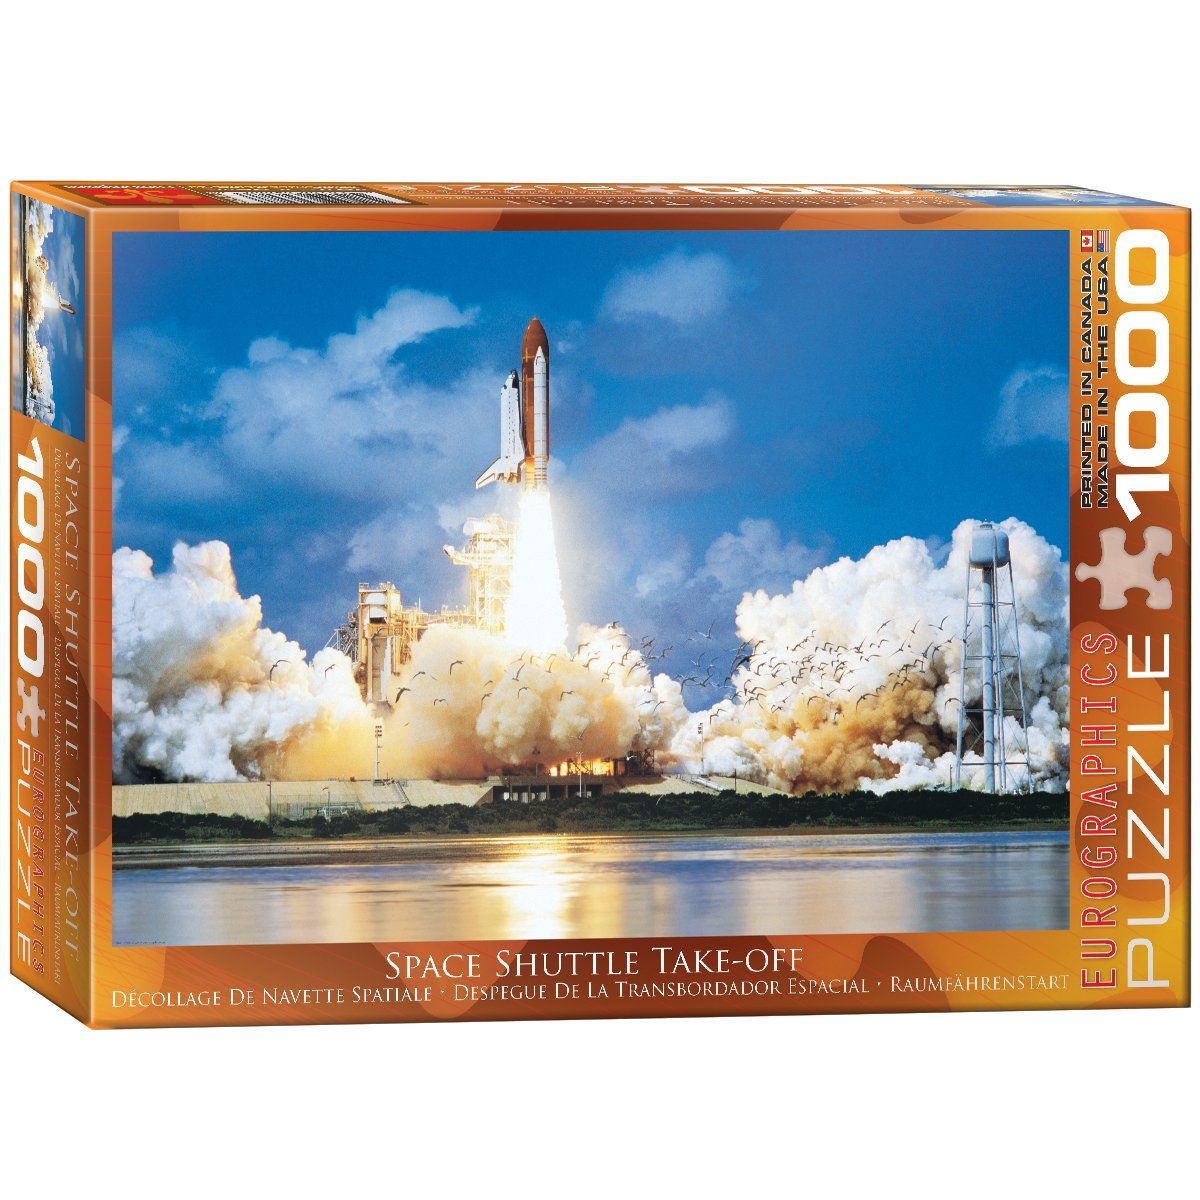 Space Shuttle 2000 Piece Jigsaw Puzzle